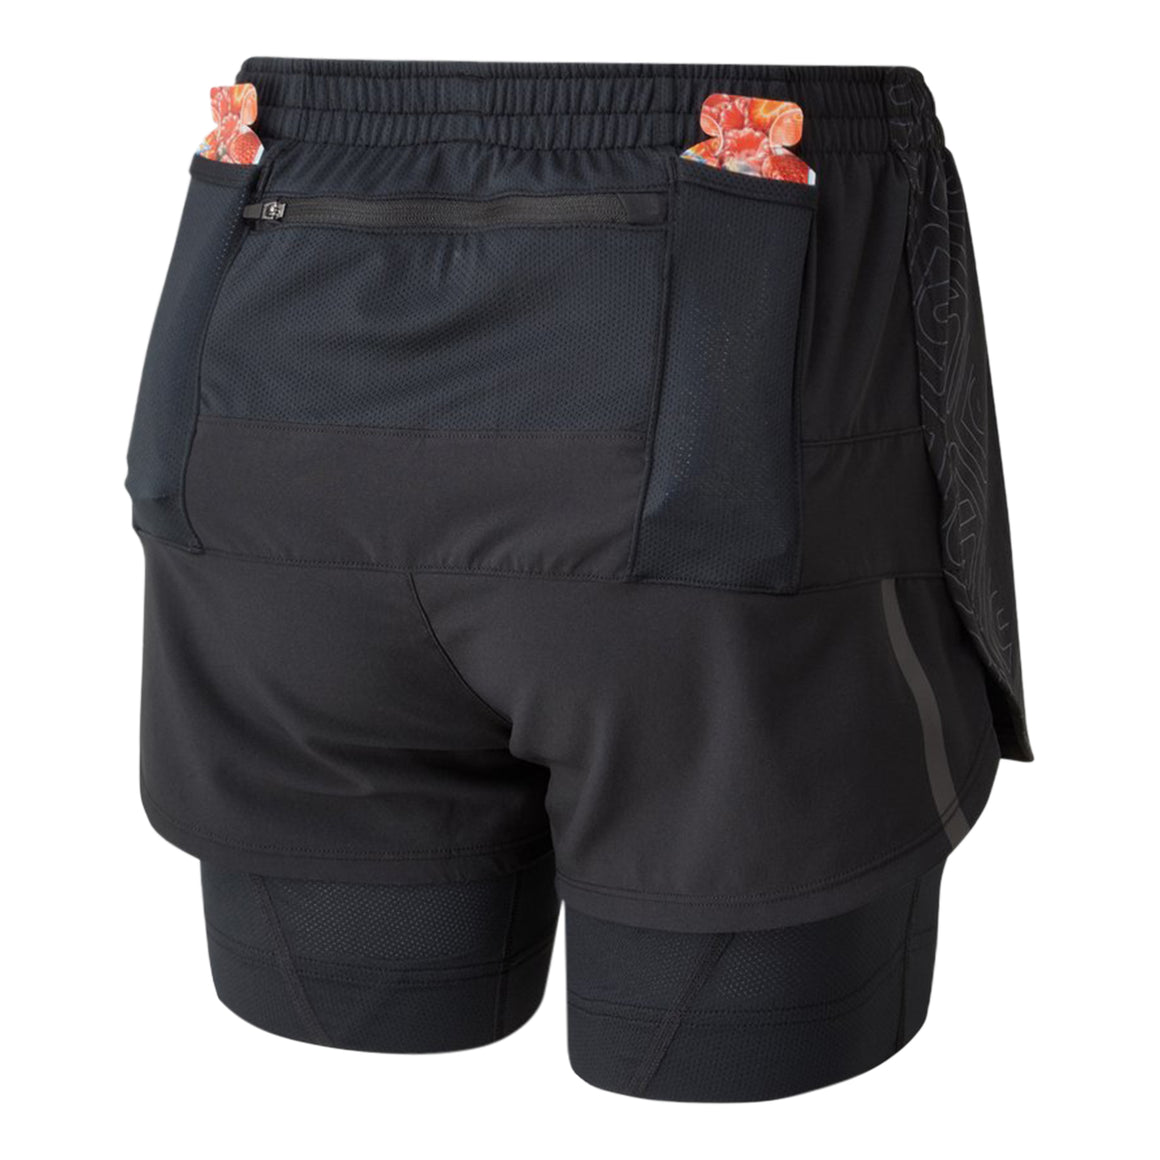 Tech Marathon Twin Short for Women in All Black